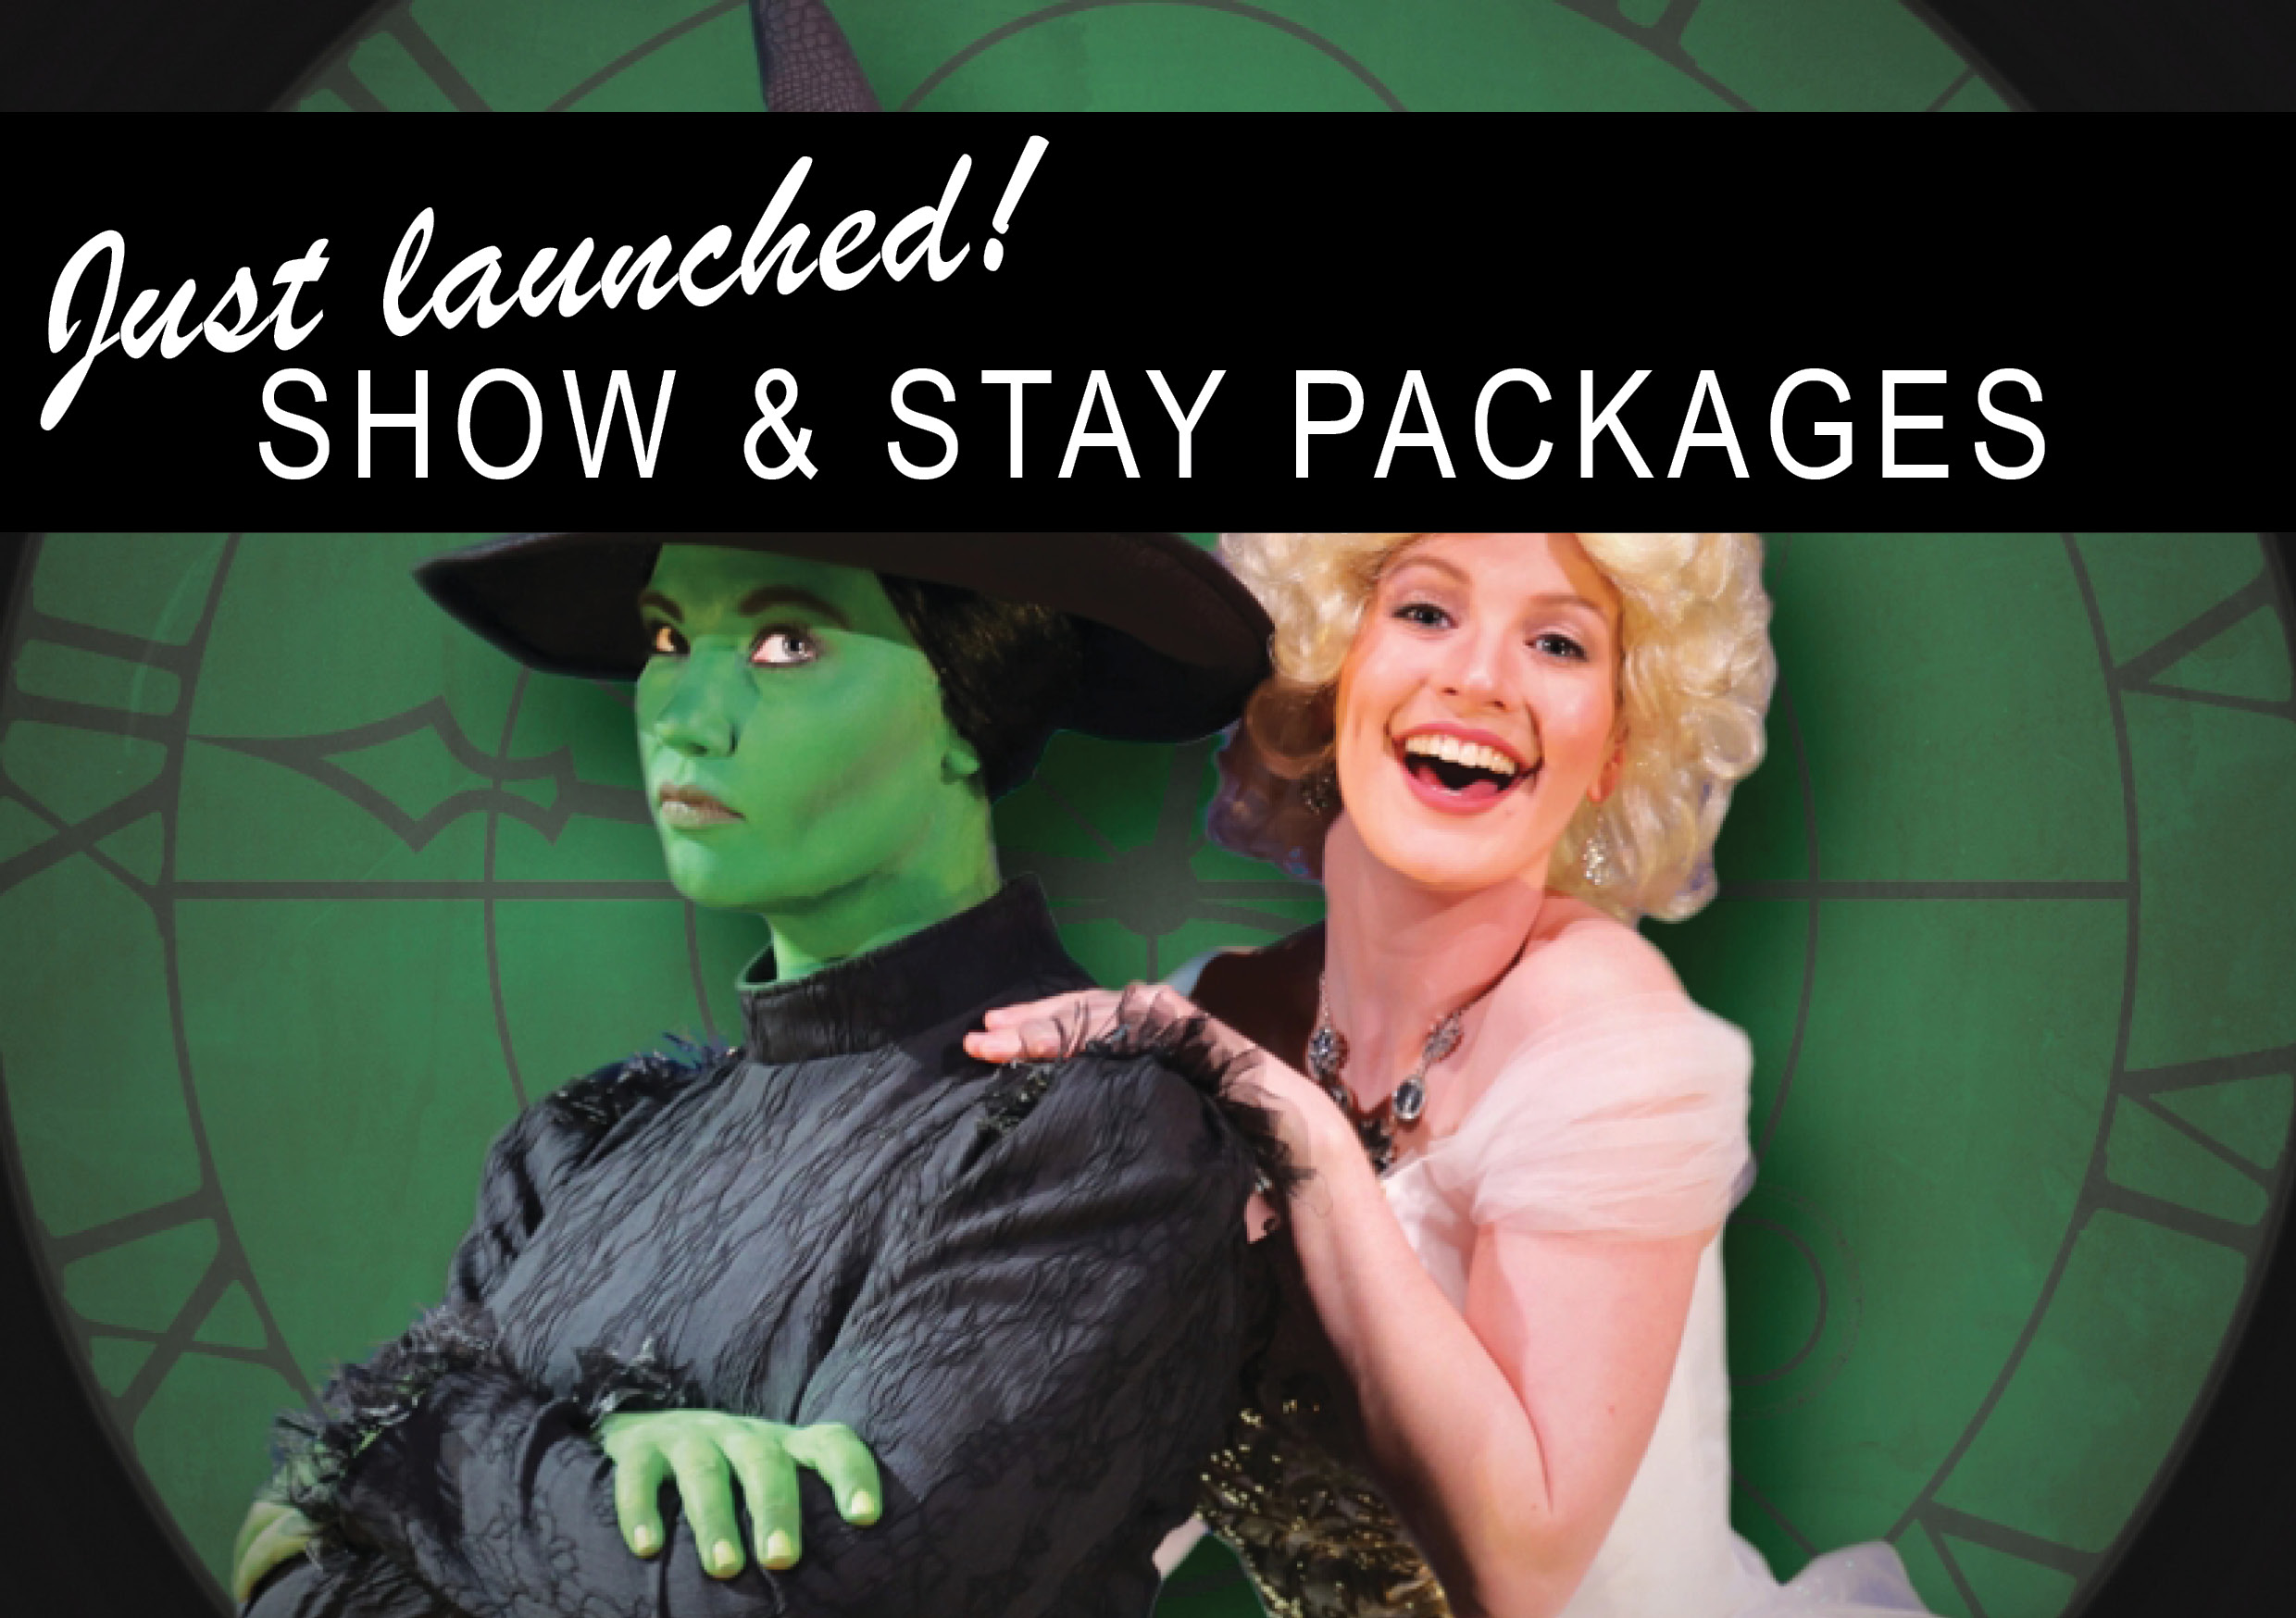 Show and Stay Packages